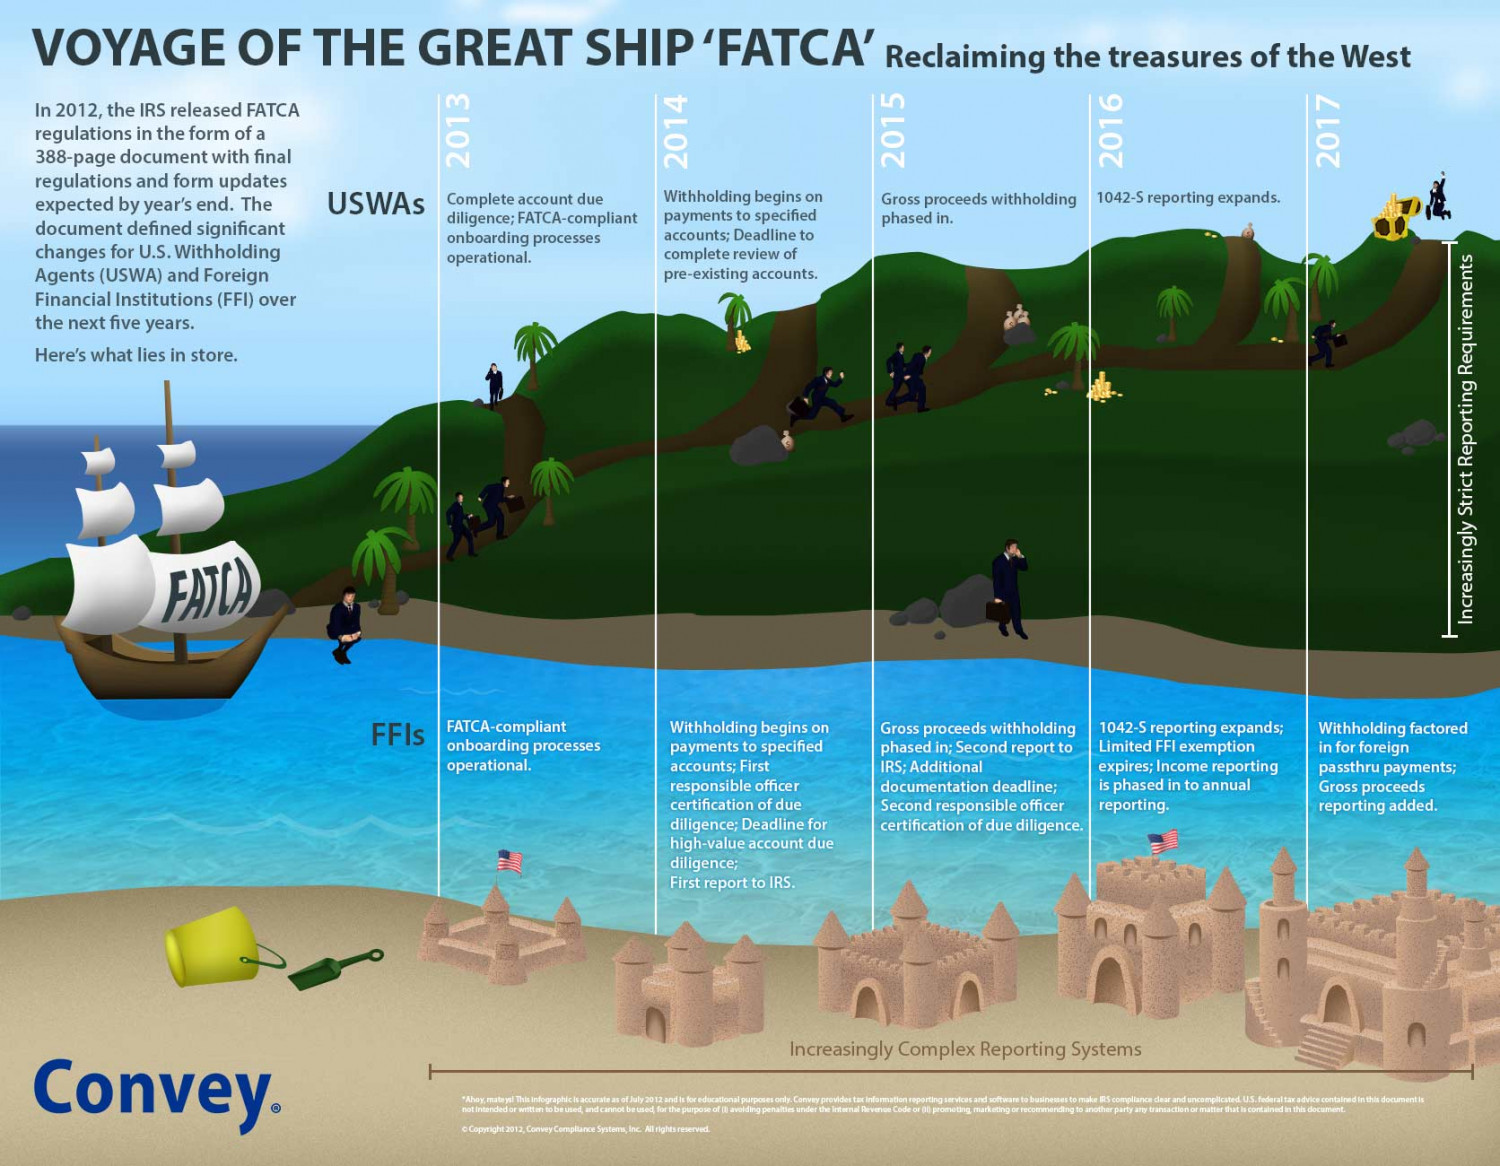 Voyage of the Great Ship 'FATCA' Infographic